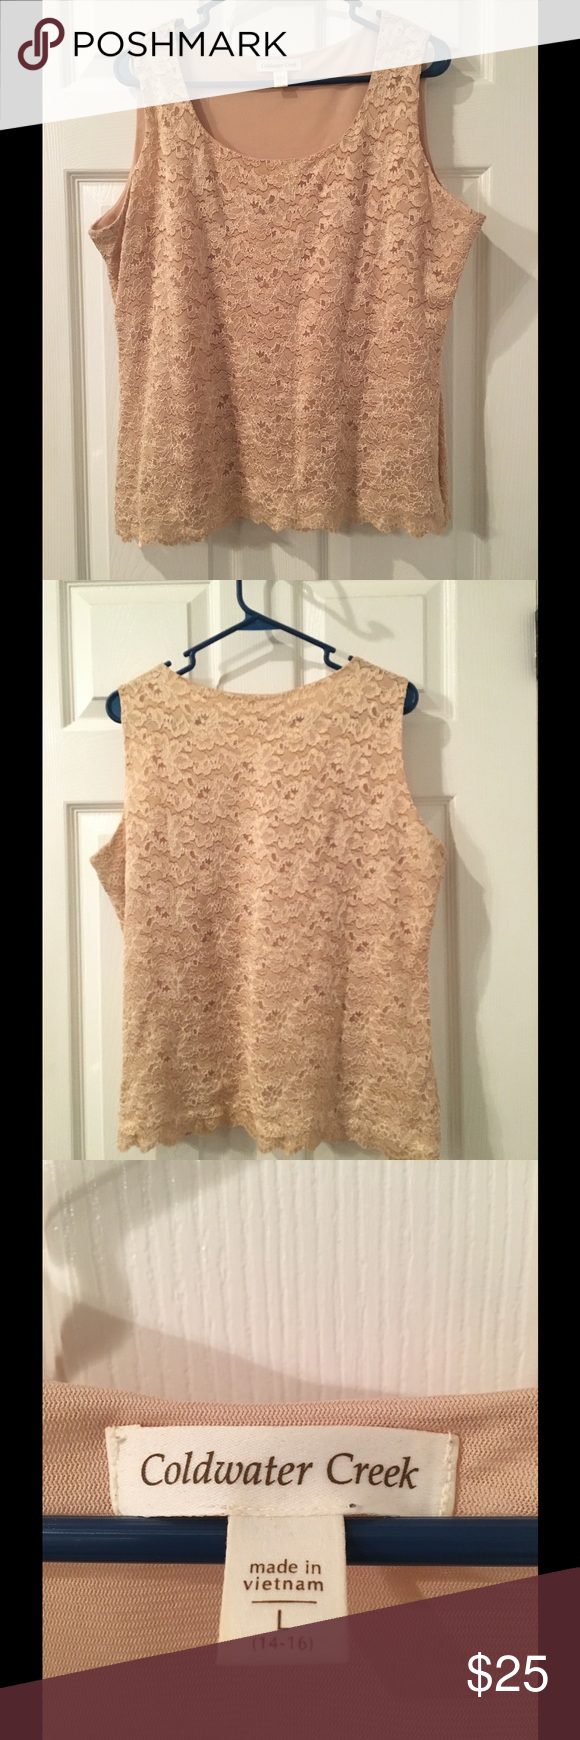 Coldwater Creek Sleeveless Top Ecru colored lace shell. Lining is 70% nylon, 28% polyester, 2% spandex. Light wear. Coldwater Creek Tops